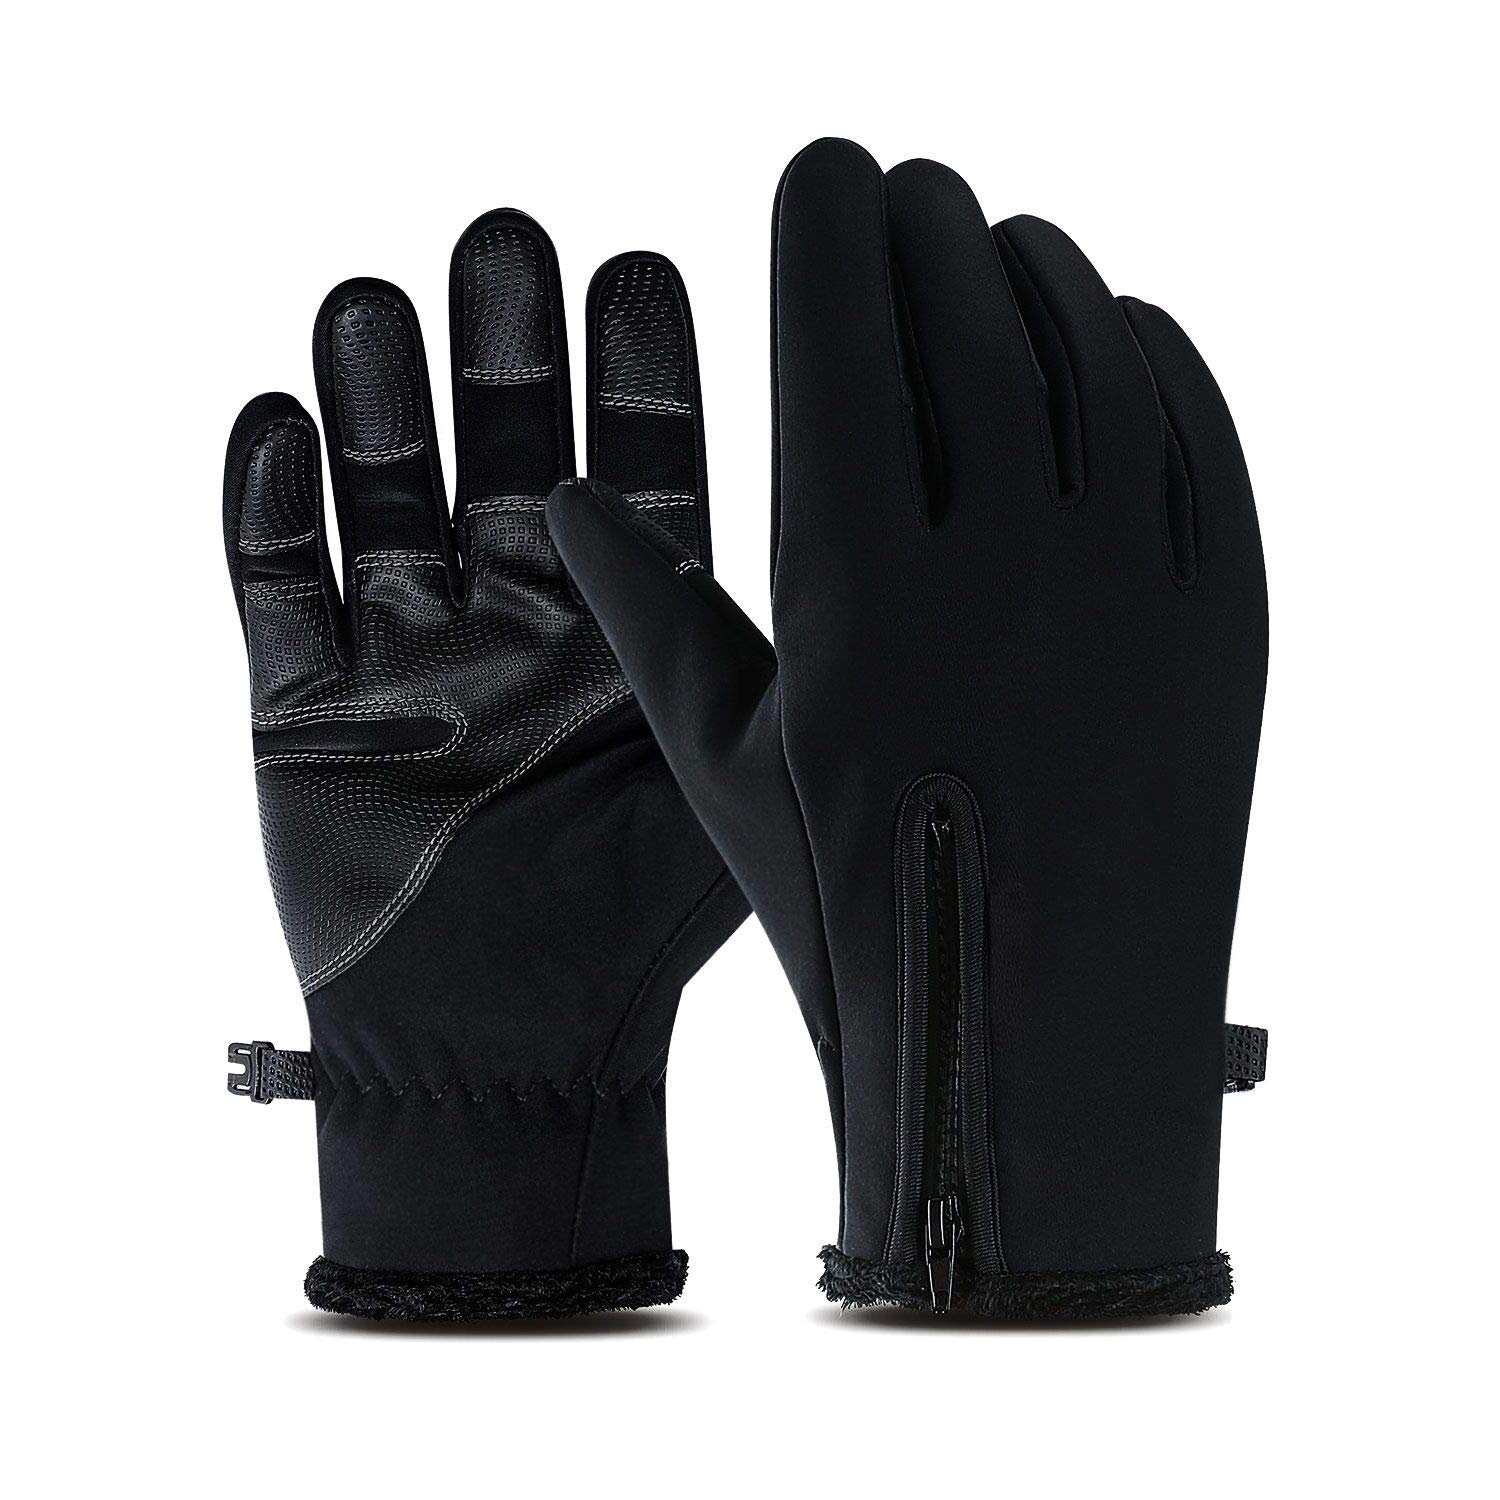 Winter Warm Gloves Touch Screen Waterproof Anti-slip*For Driving Sports Cycling